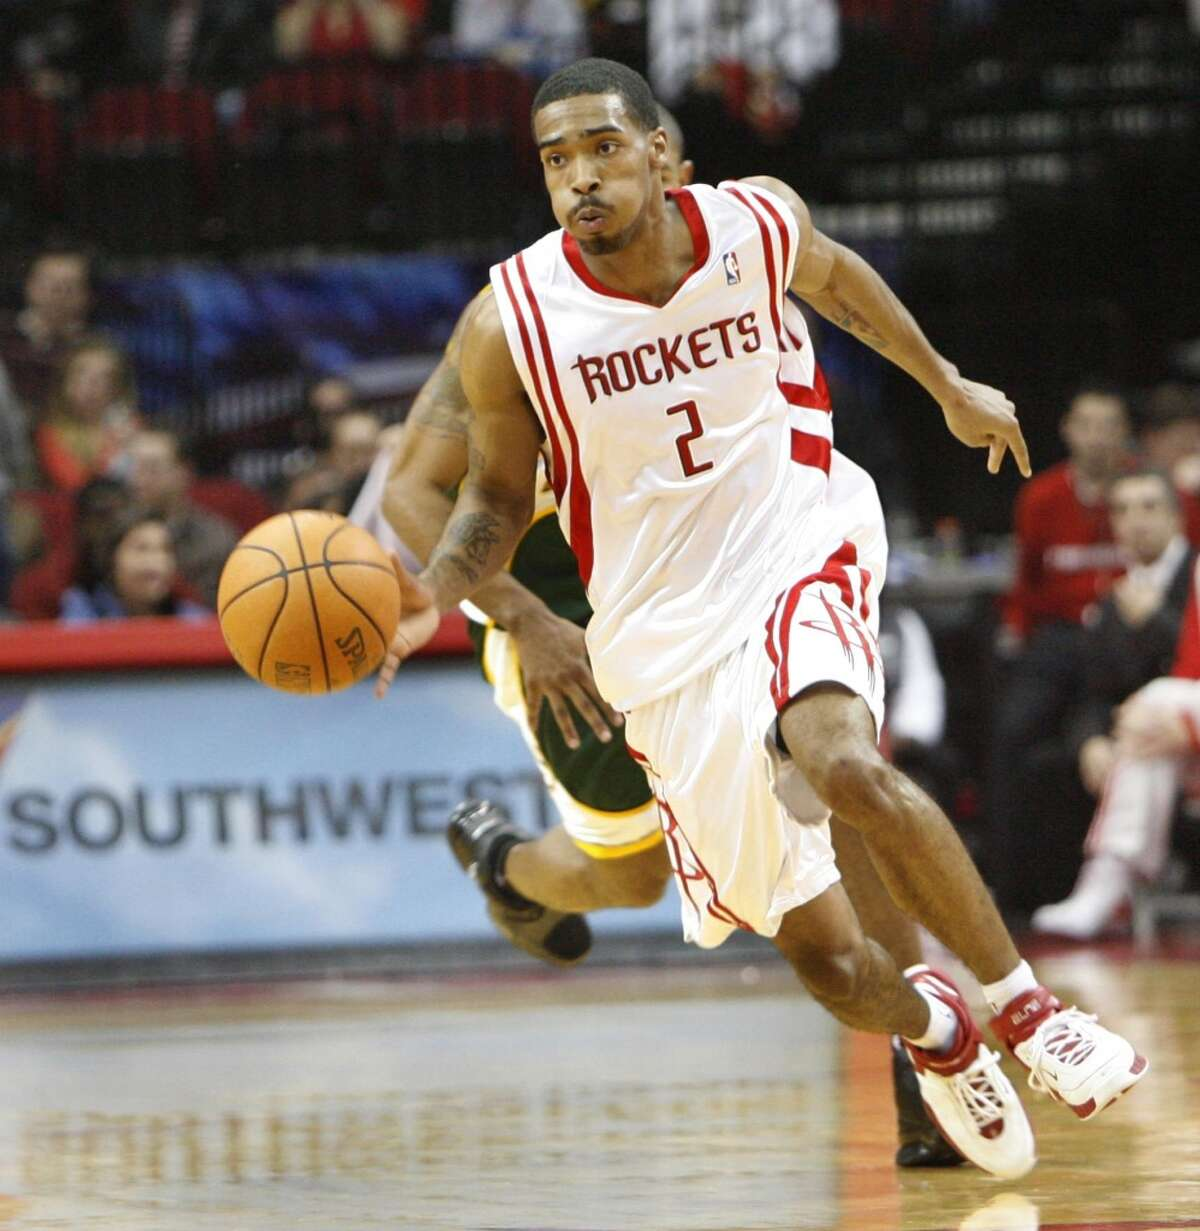 Luther Head Drafted: 2005 NBA Draft; Round 1, Pick 24 College: Illinois Years with the Rockets: 2005-2009 The guard played in a wildly talented Illinois team in college, but he never quite found the same scoring touch in the pros.